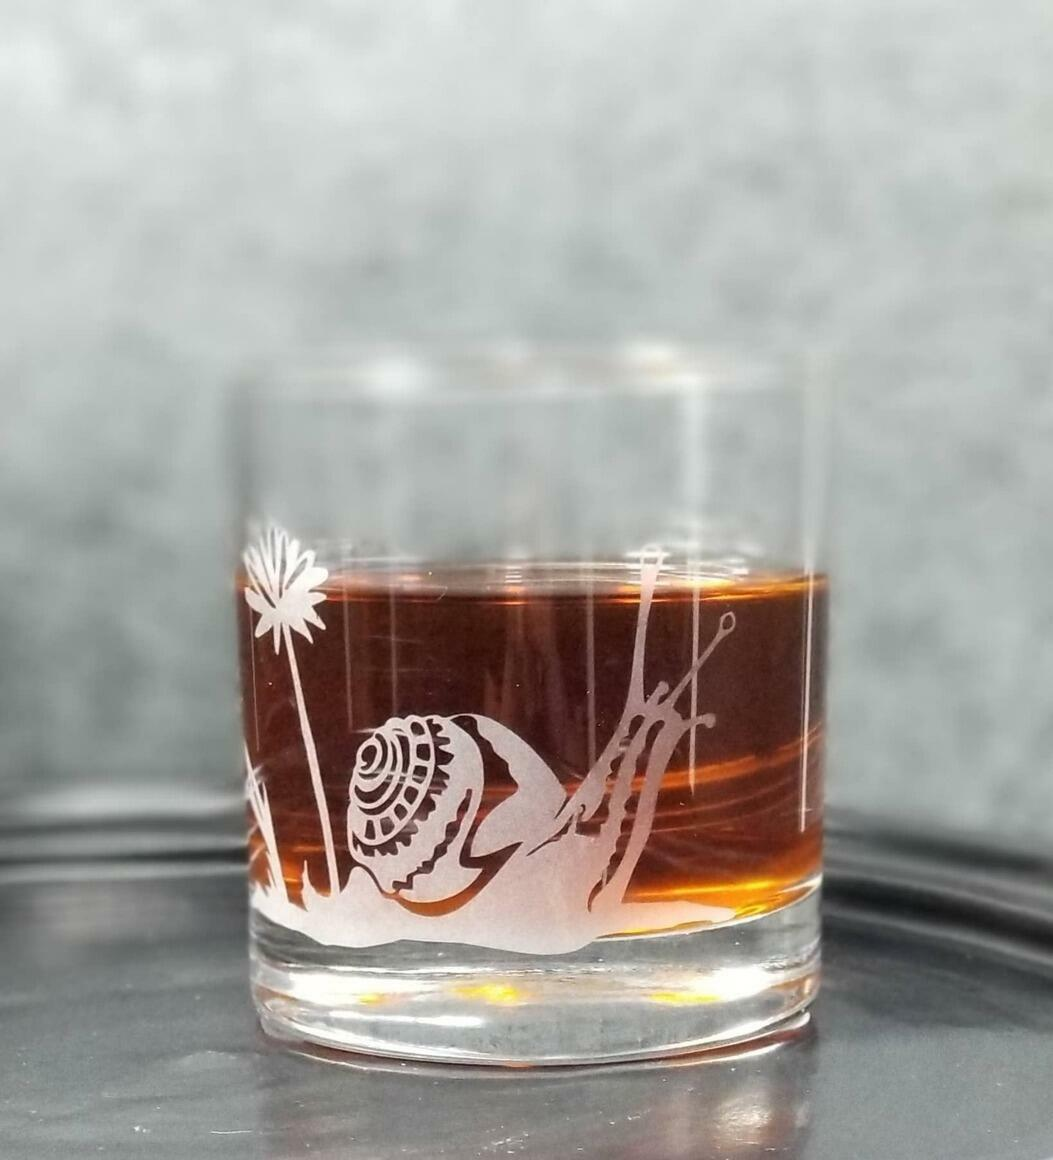 Garden Snail Etched Whiskey Cocktail Glass   Trada Marketplace